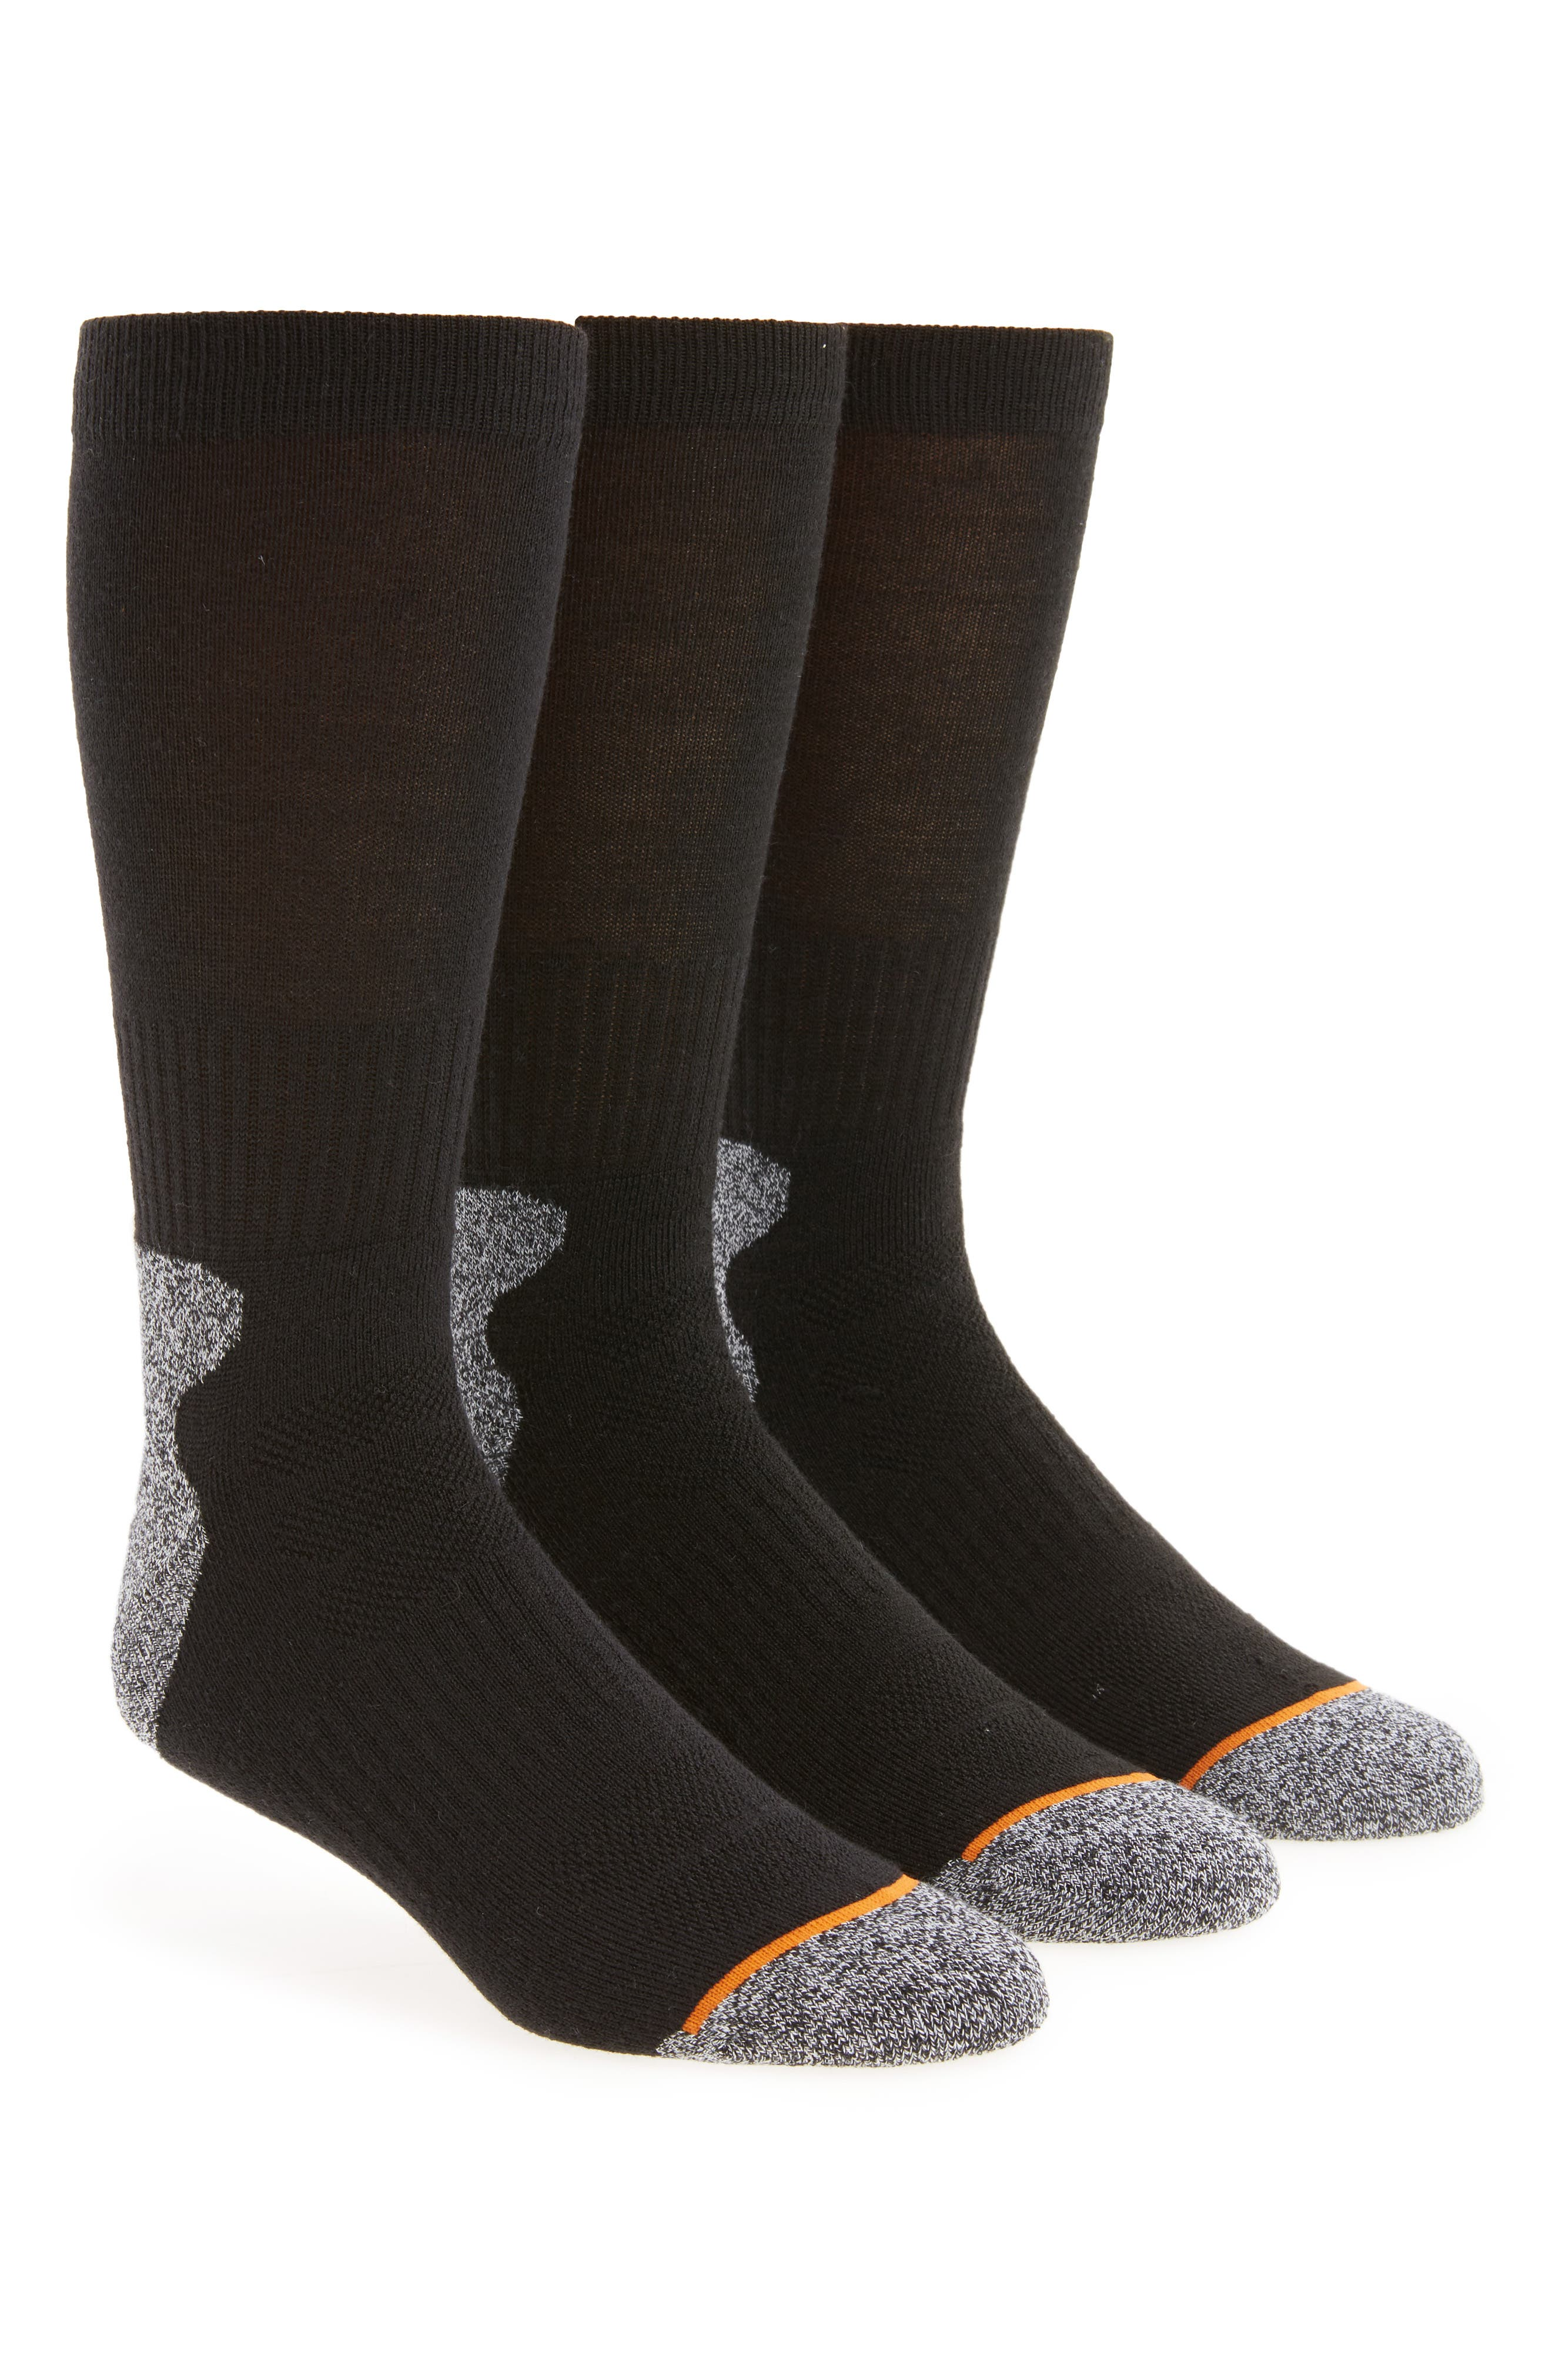 3-Pack Assorted Boot Socks,                         Main,                         color, 001